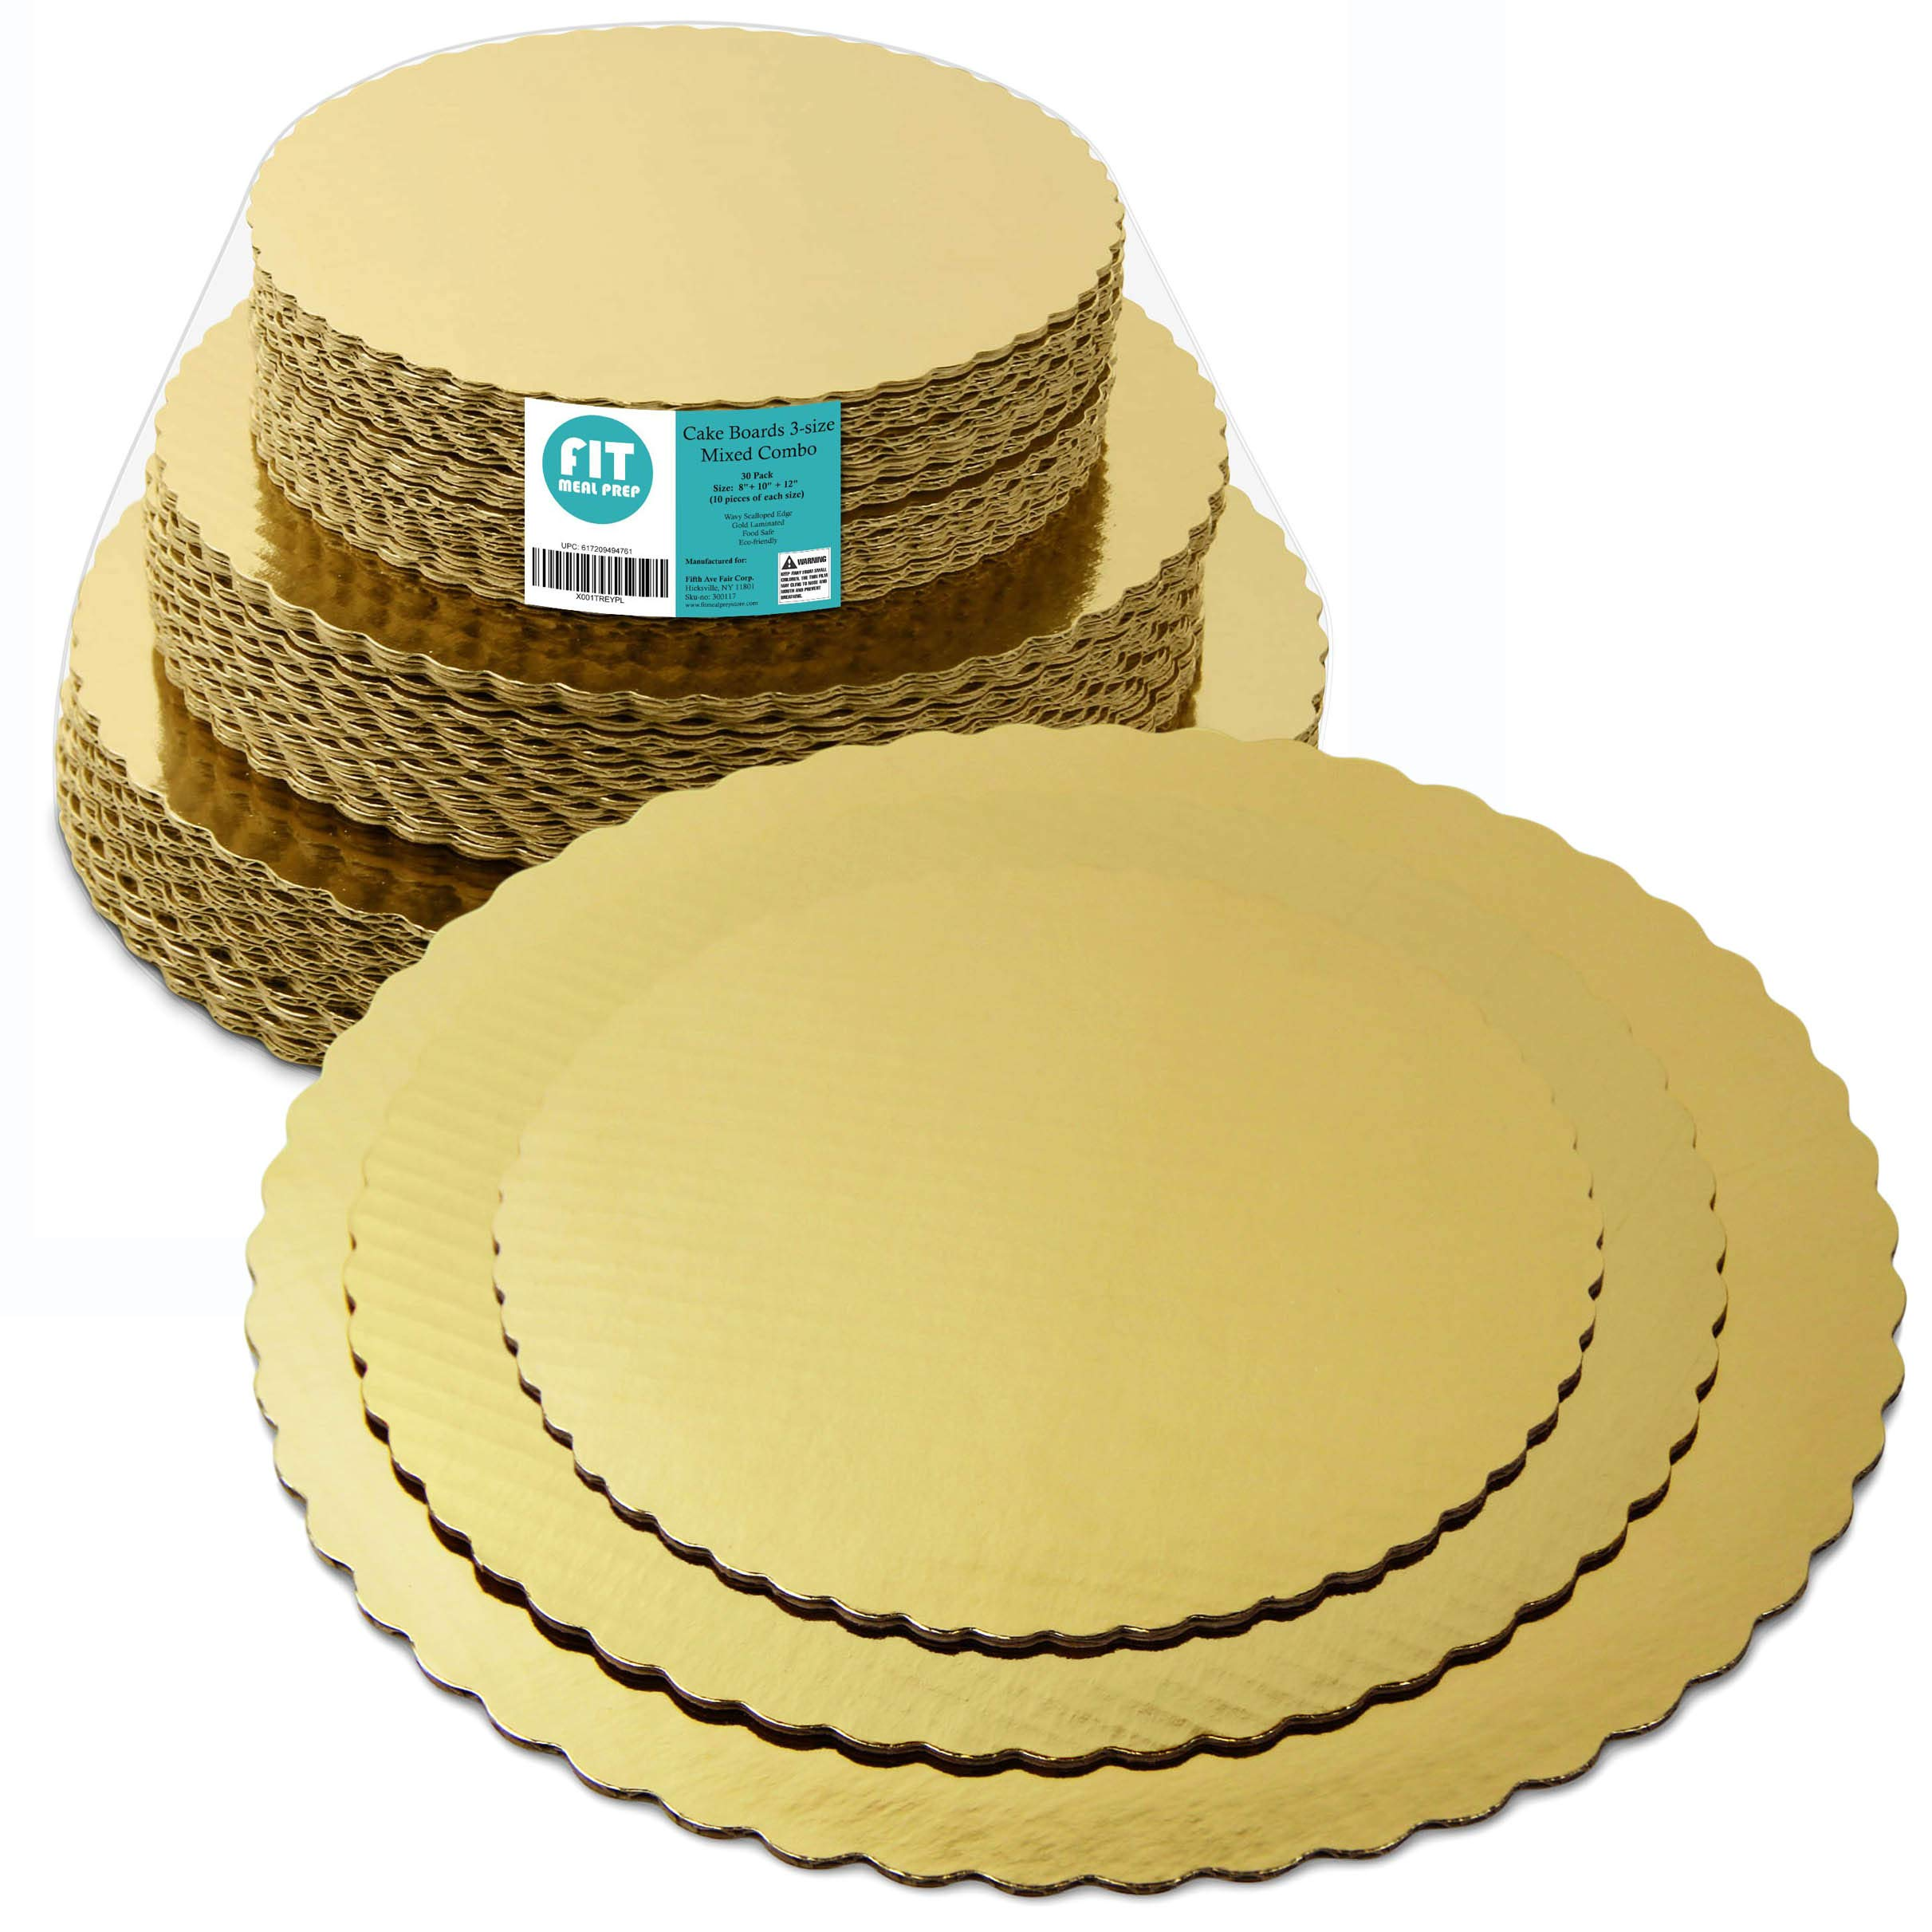 8 10 12 Inches Round Tierd Cake Boards Combo - Cardboard Disposable Layered Cake Pizza Circle Scalloped Gold Stackable Tart Decorating Base Stand - 30 Pieces by Fit Meal Prep